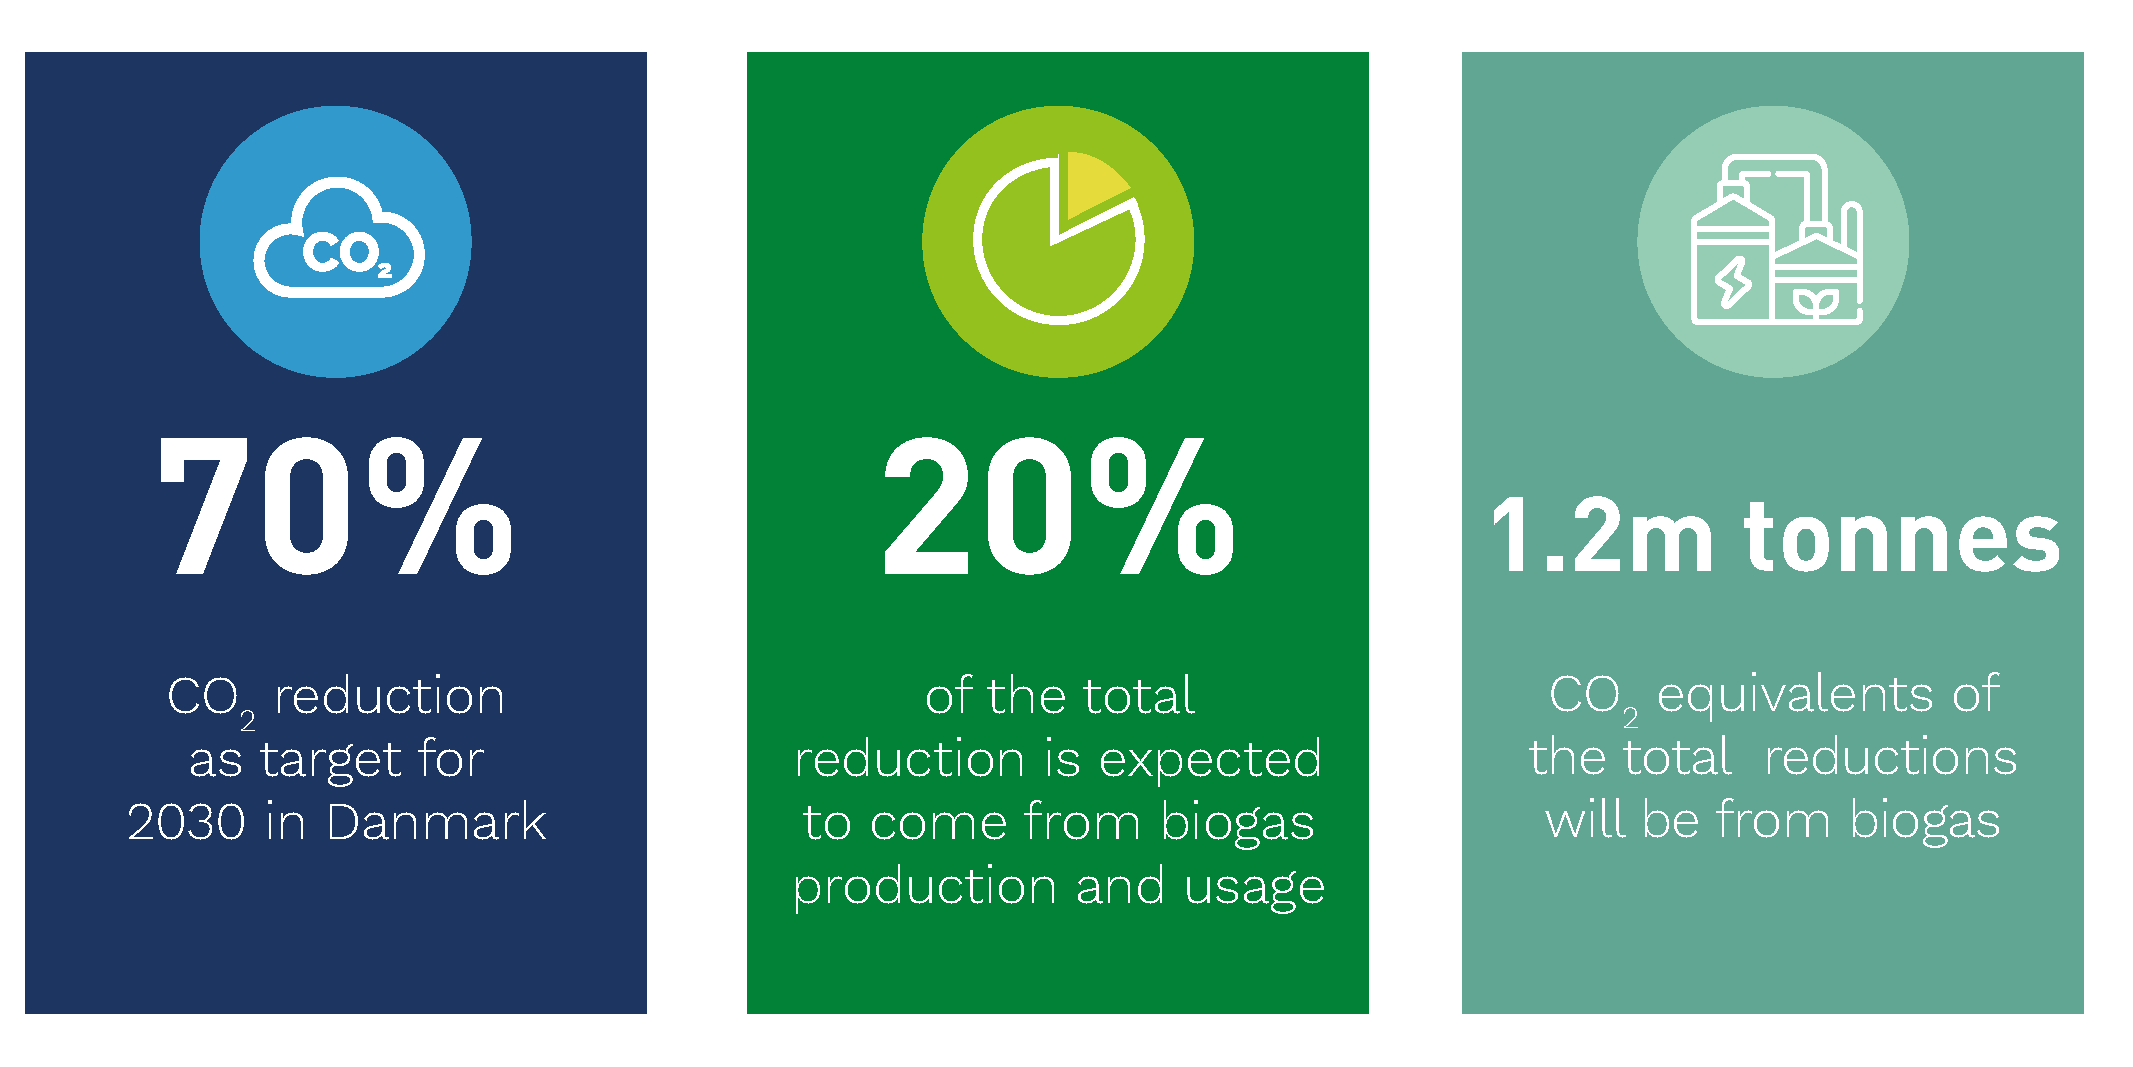 Biogas has a central position in meeting the 2030 climate target